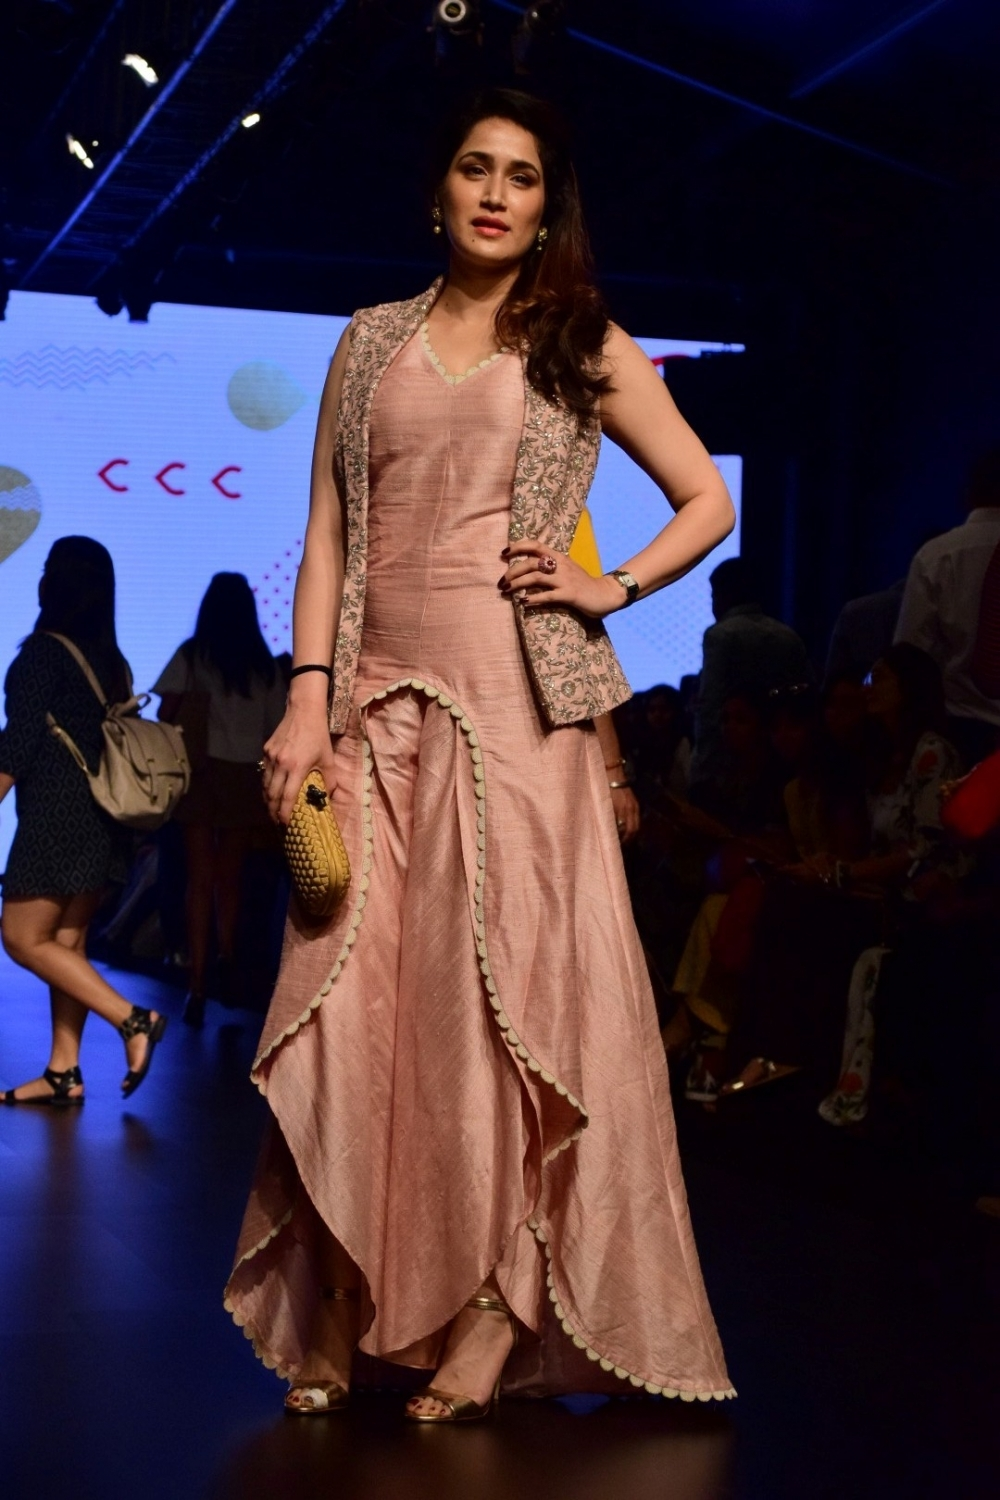 Mumbai: Actress Sagarika Ghatge during the Lakme Fashion Week Summer/Resort 2017, in Mumbai, on Feb 3, 2017. (Photo: IANS)